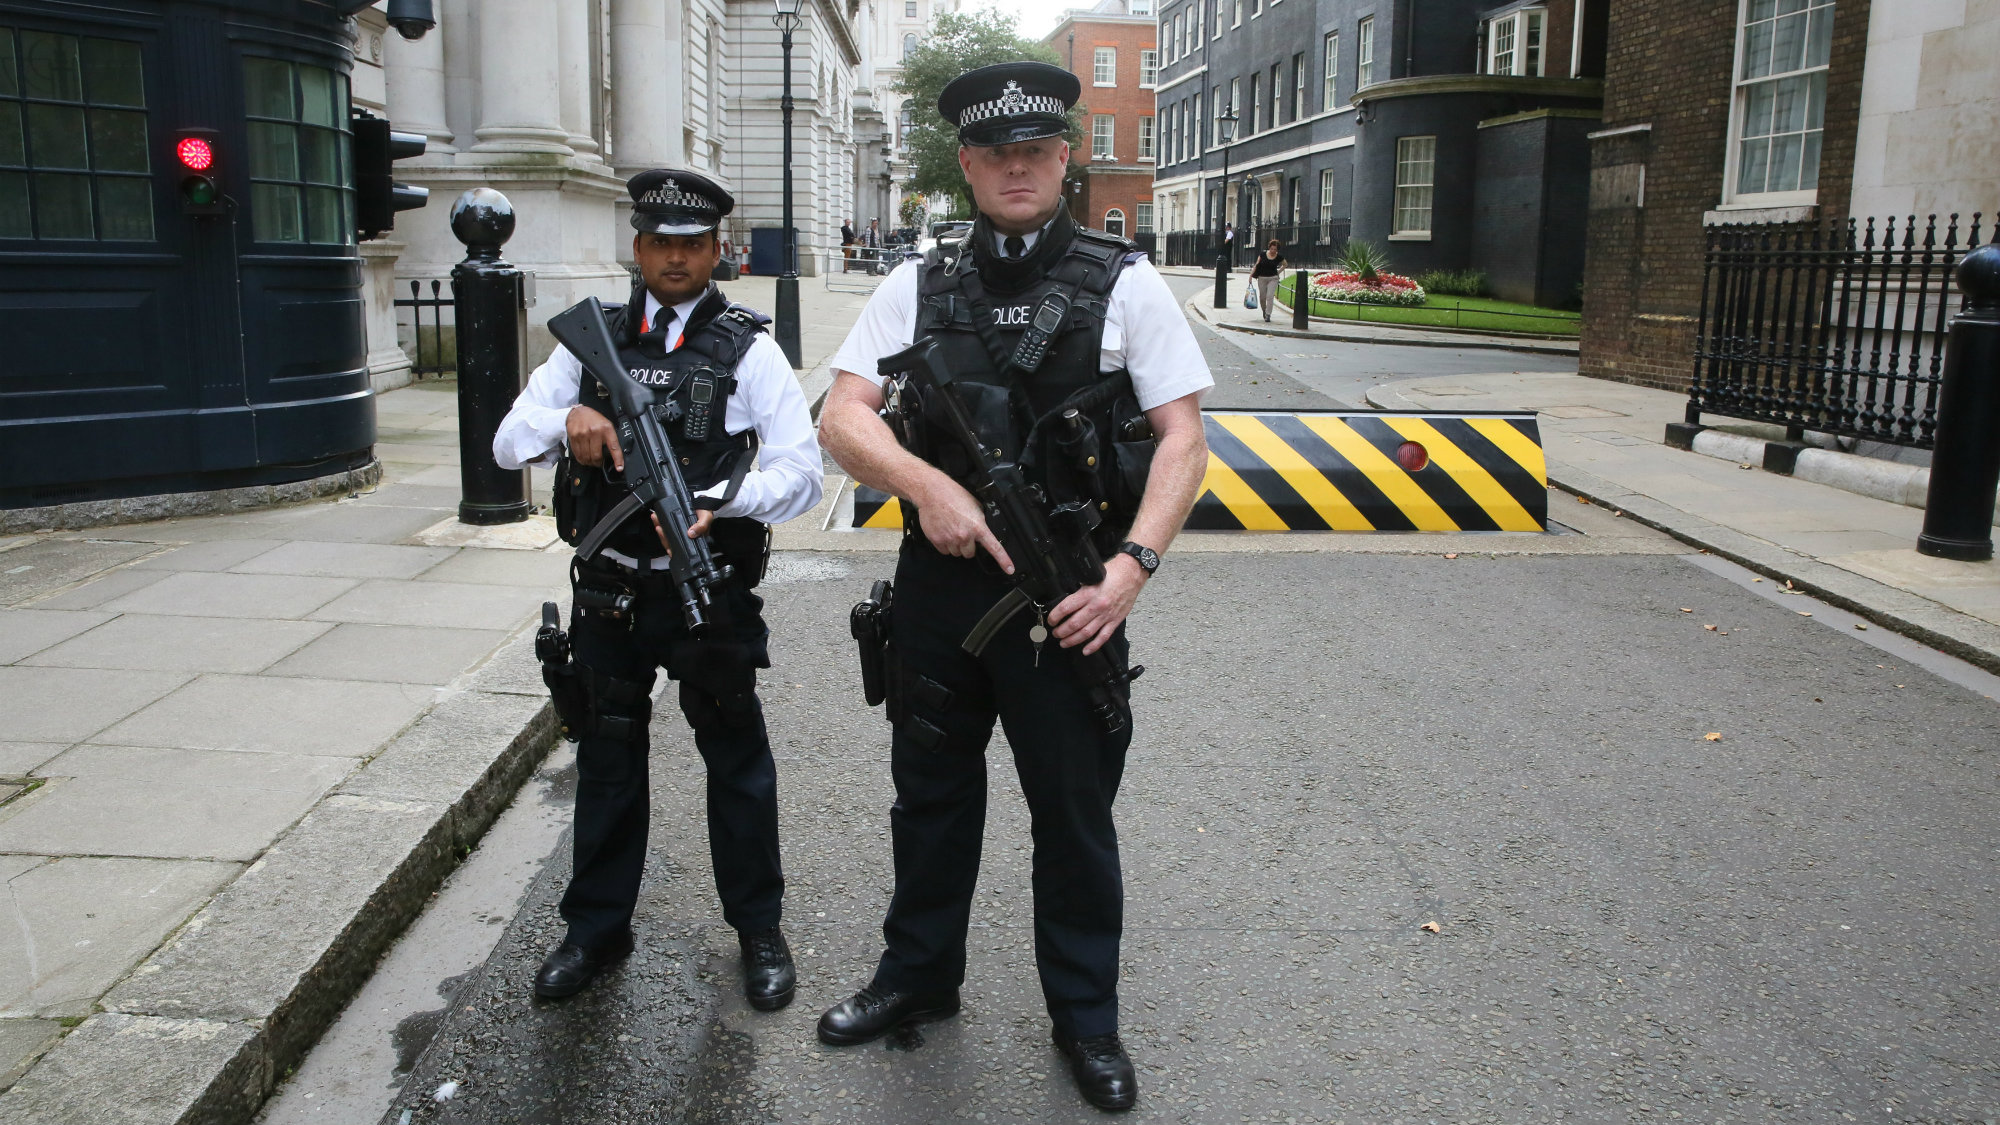 Armed police officers pose for the media in Downing Street, central London.